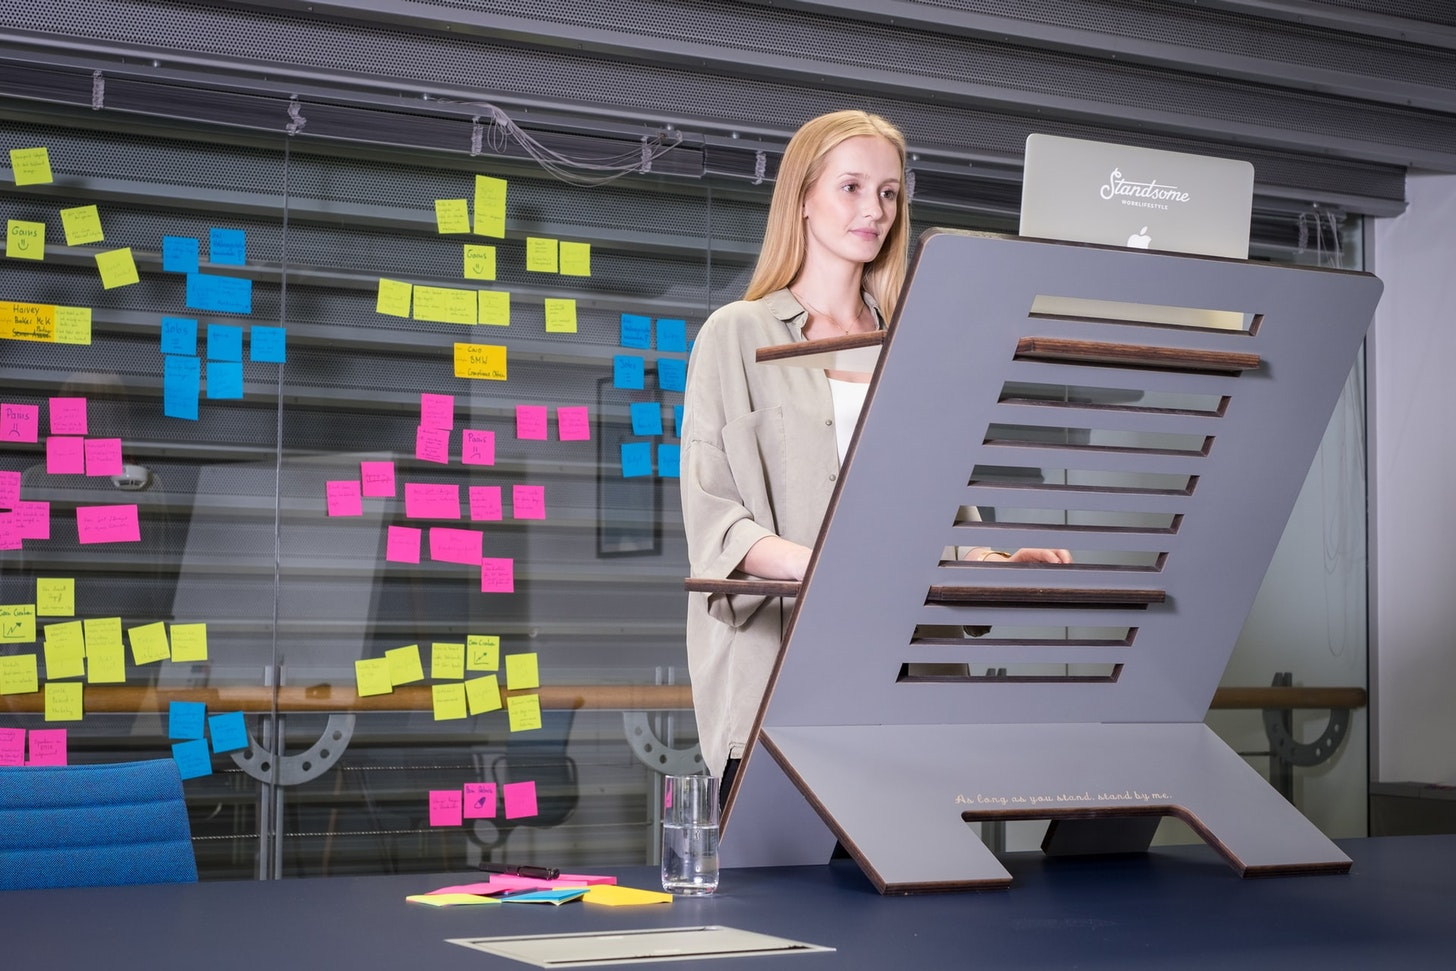 Woman working on a large standing desk with many post-its behind